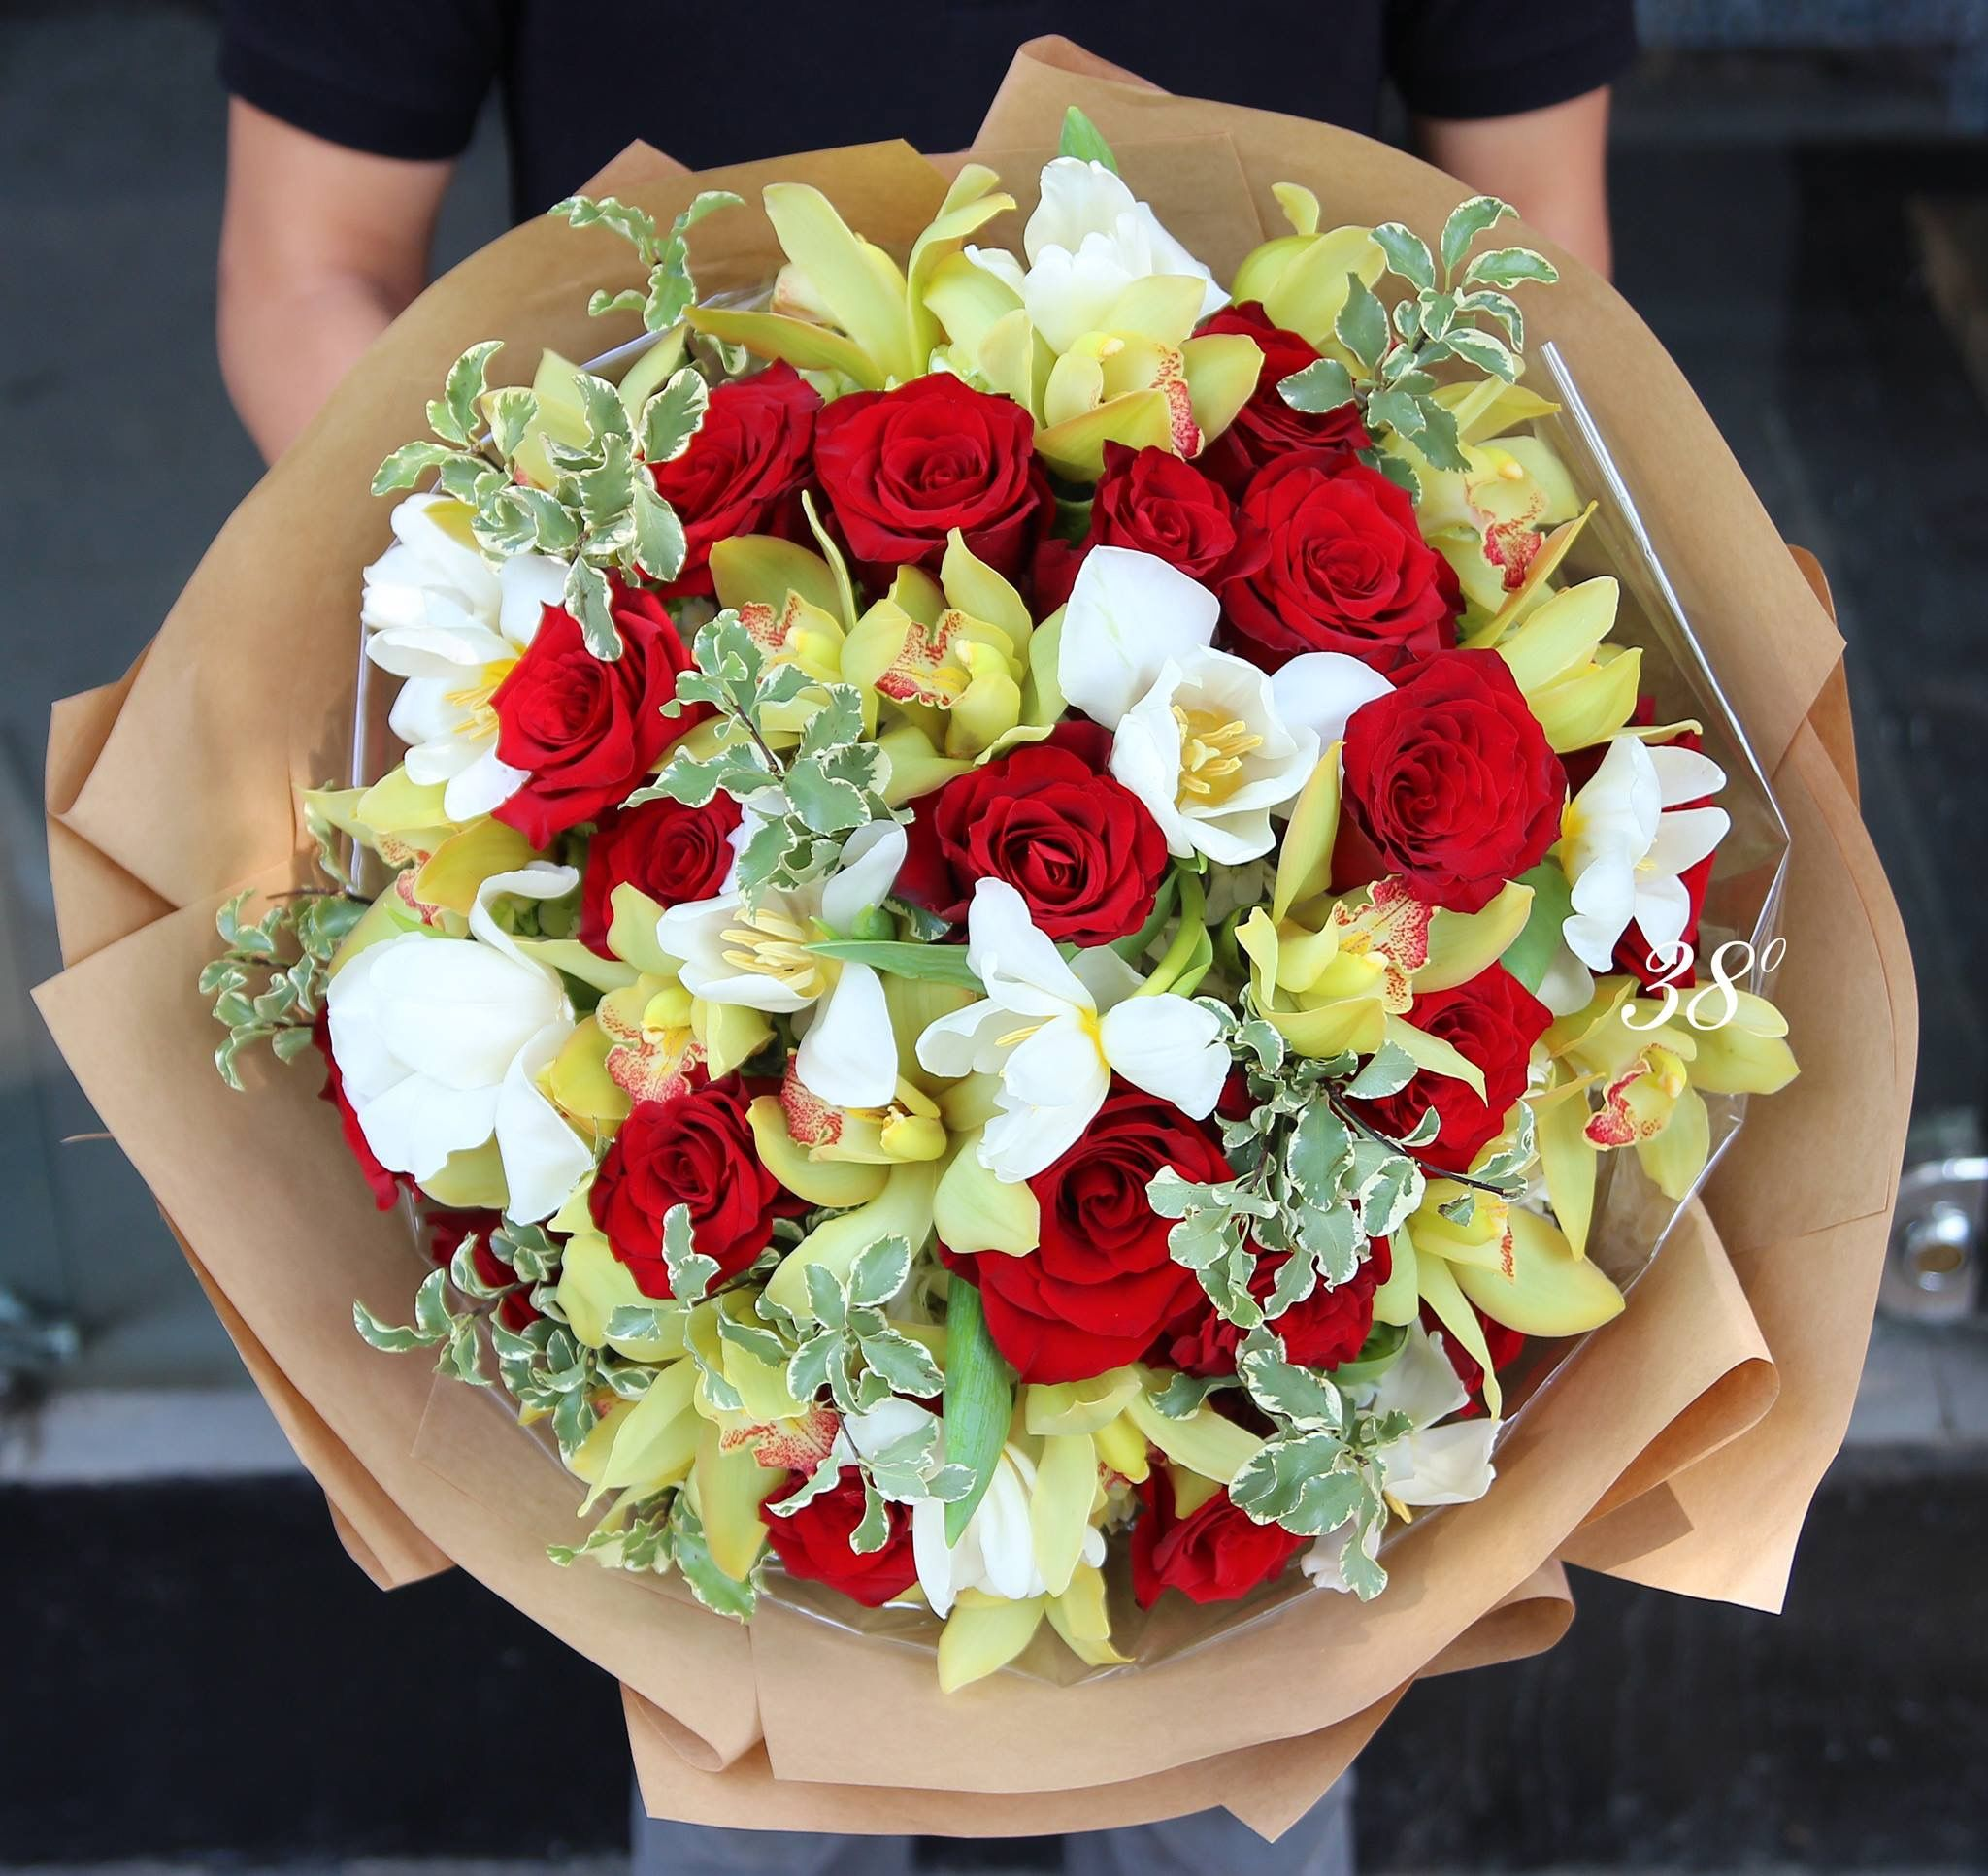 Pin by Trần Nguyễn Ngọc My on 38 Degree Flowers Bouquet